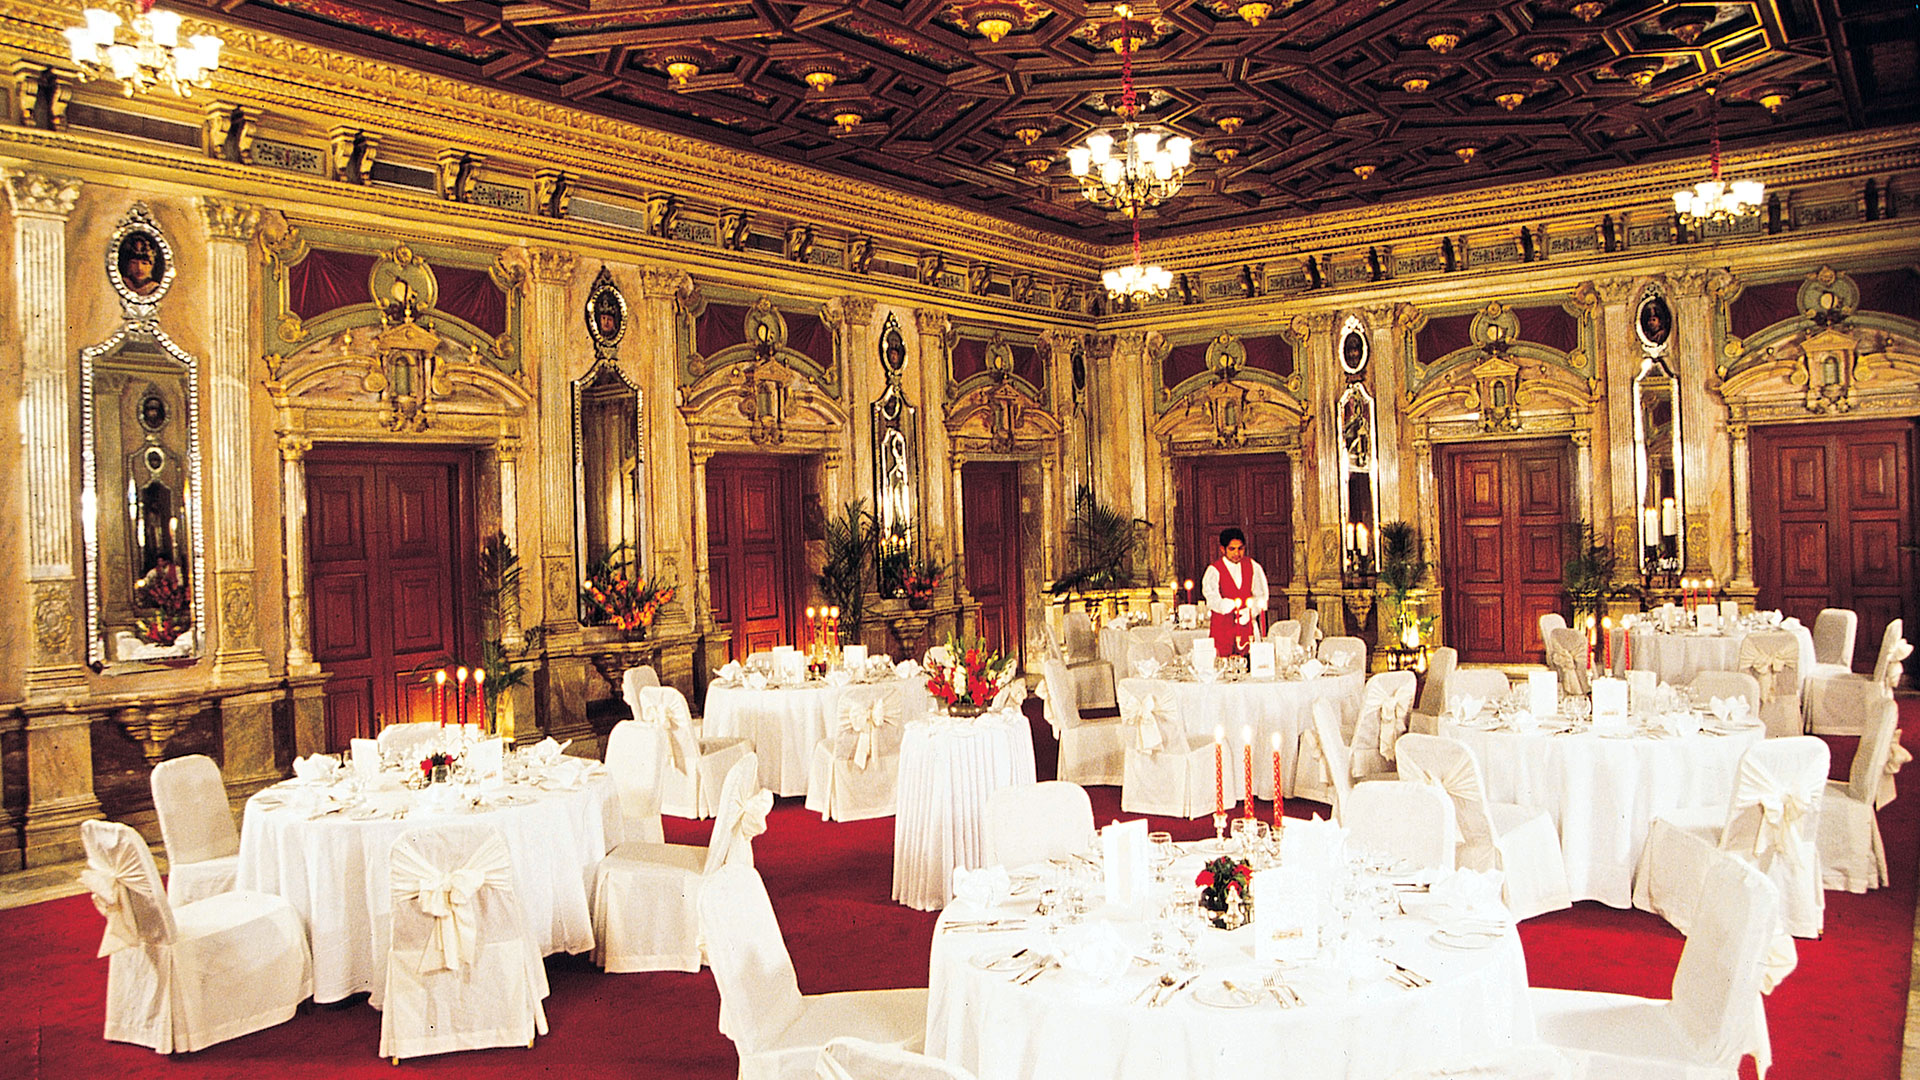 Hotel Yak and Yeti Dynasty Hall